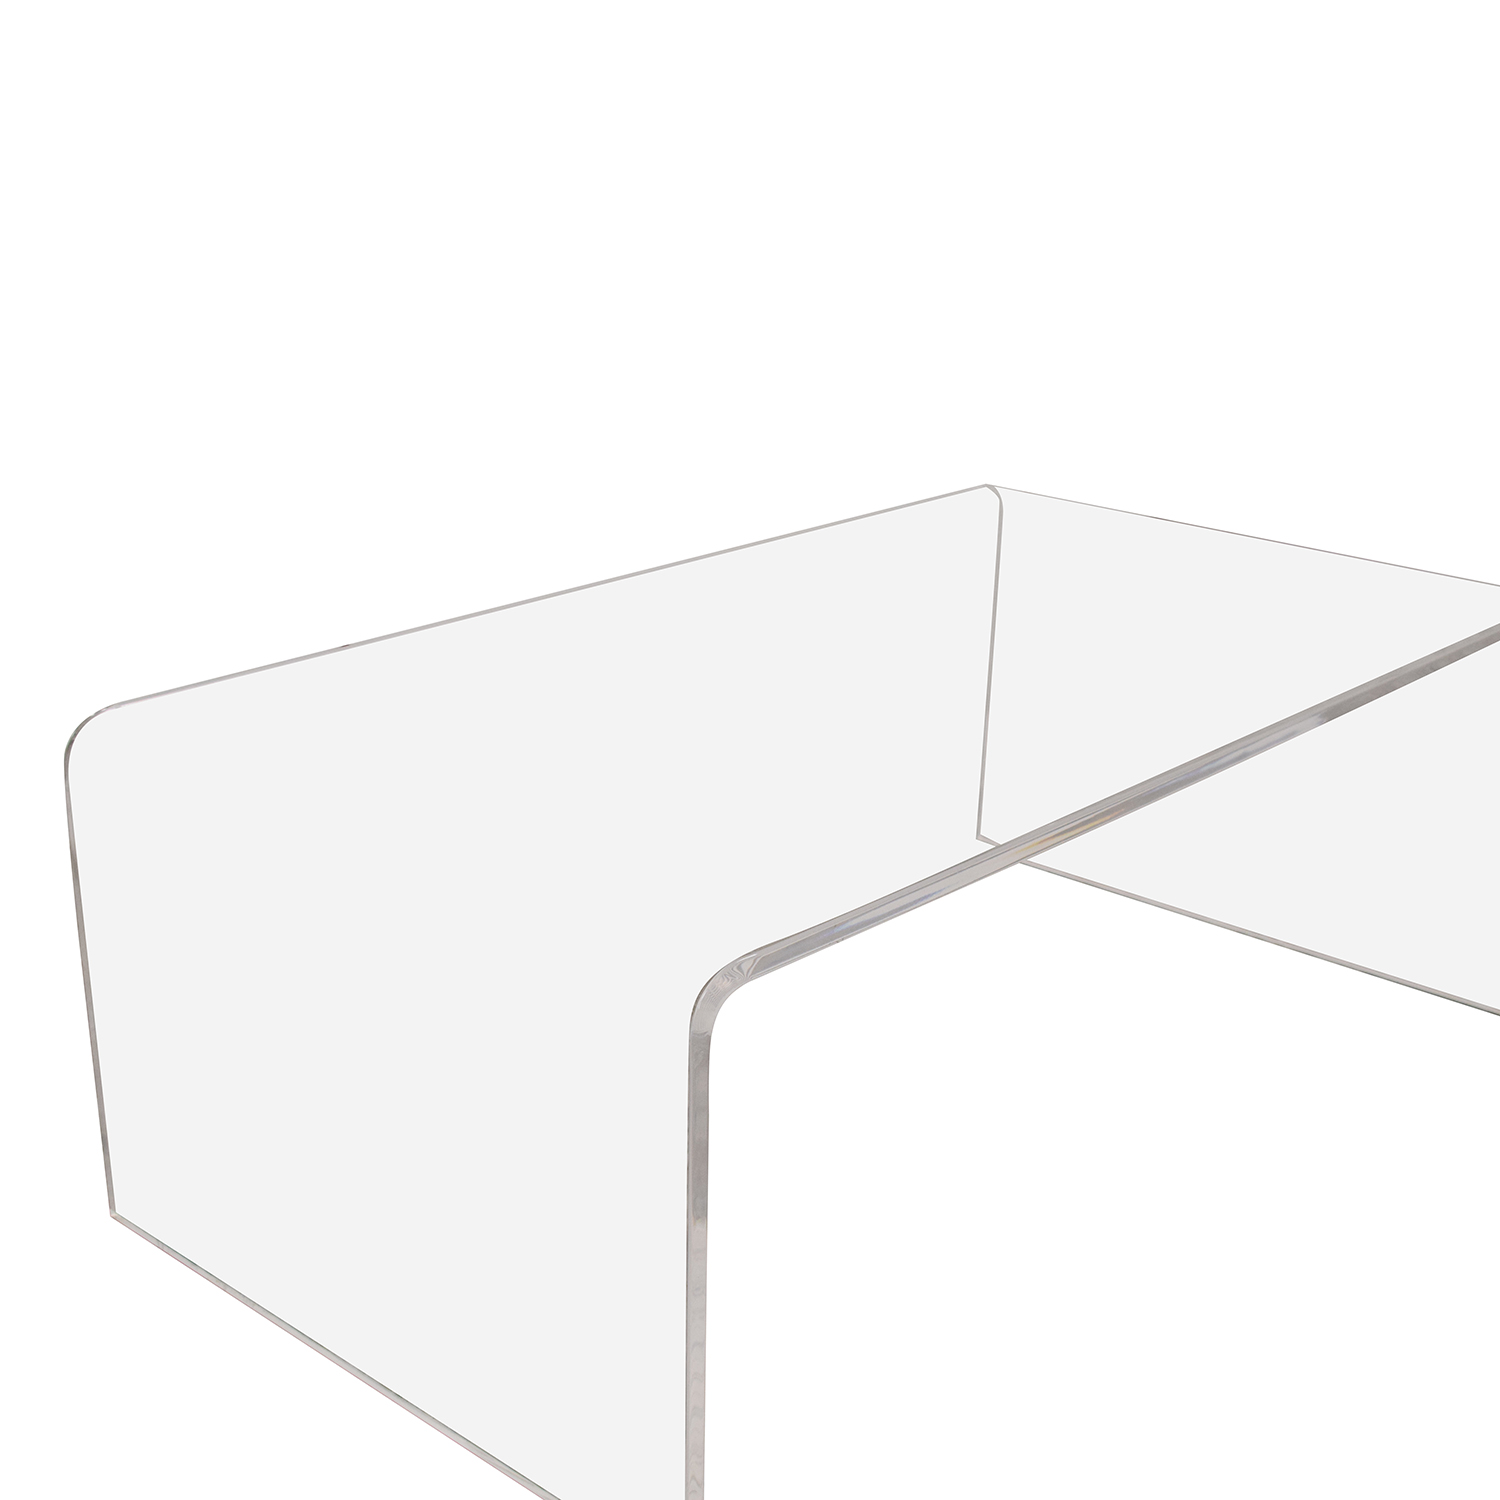 CB2 CB2 Peekaboo Acrylic Coffee Table price